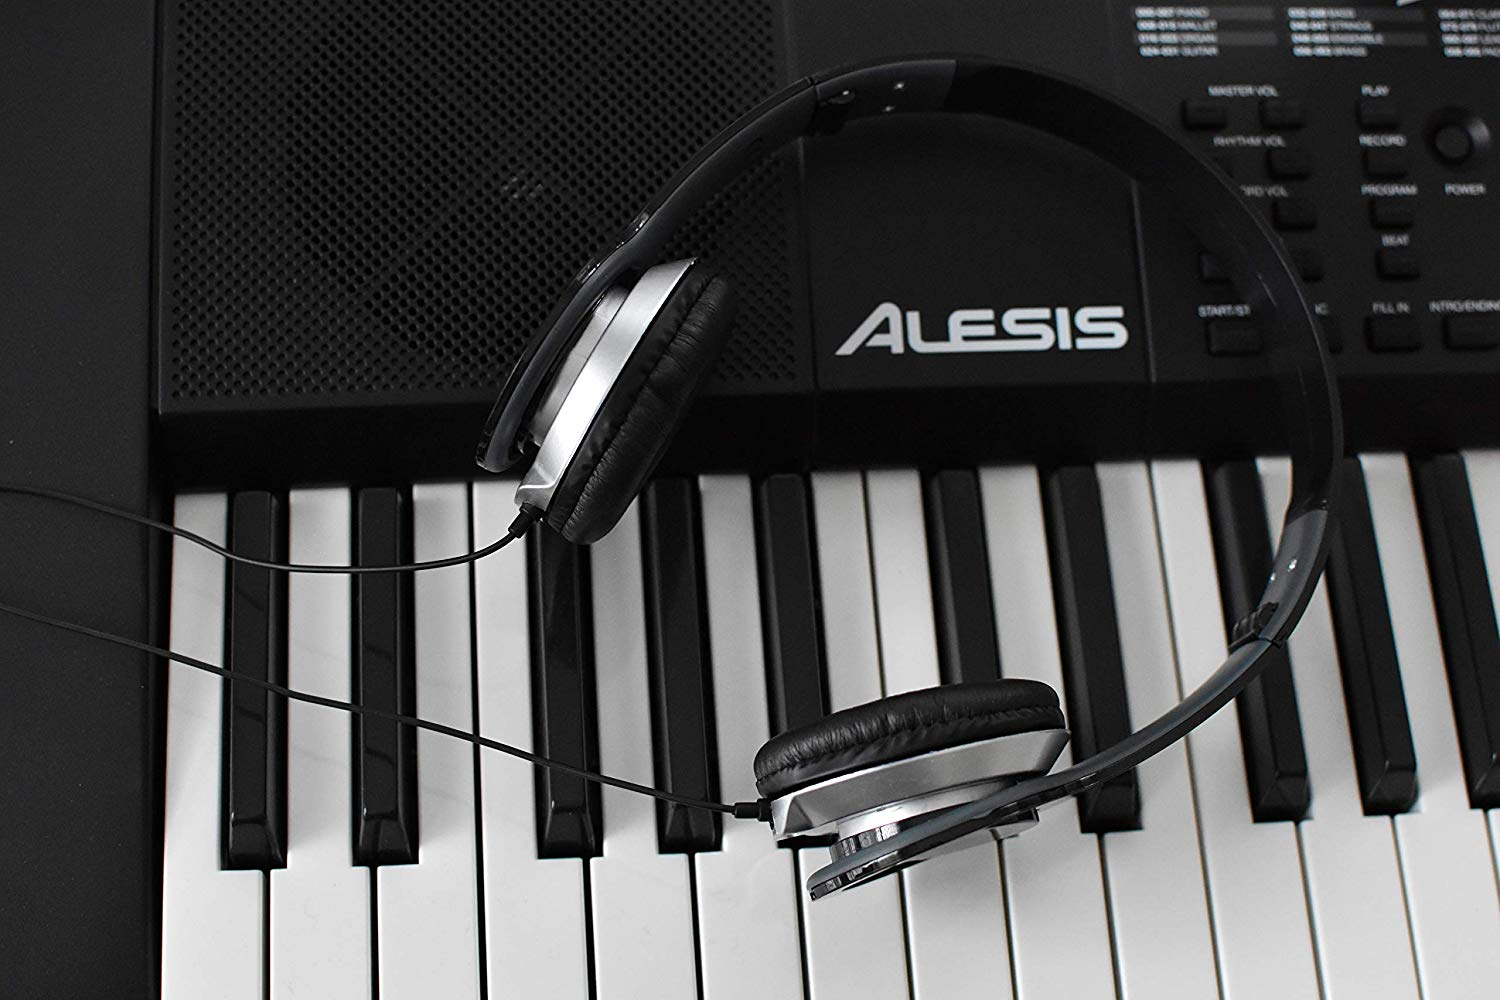 Alesis Melody 61 review